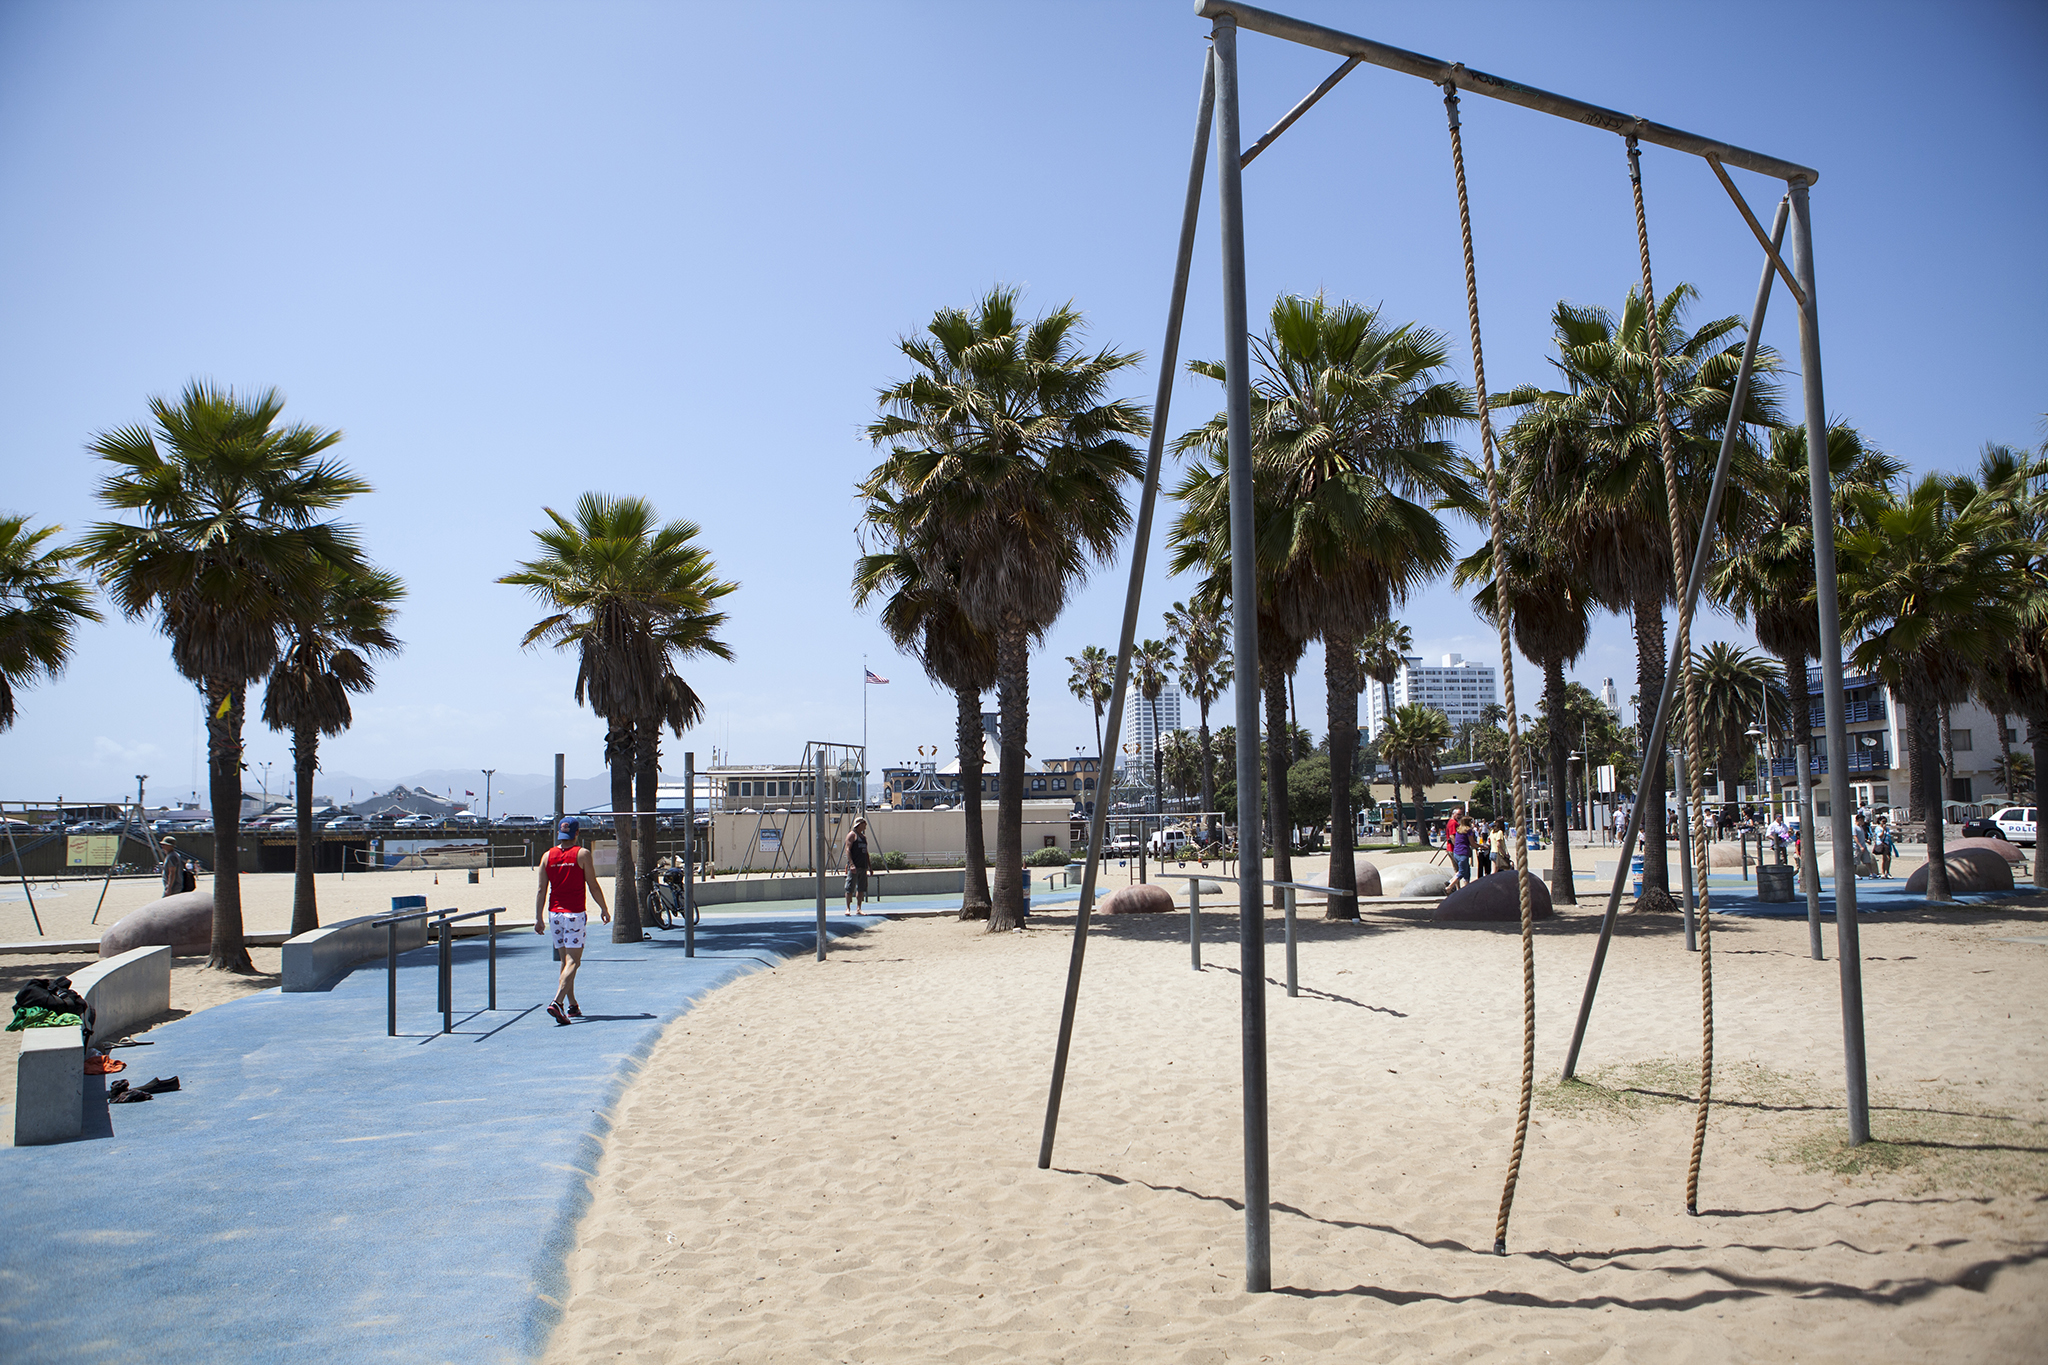 Free workouts: Top circuit training parks in LA